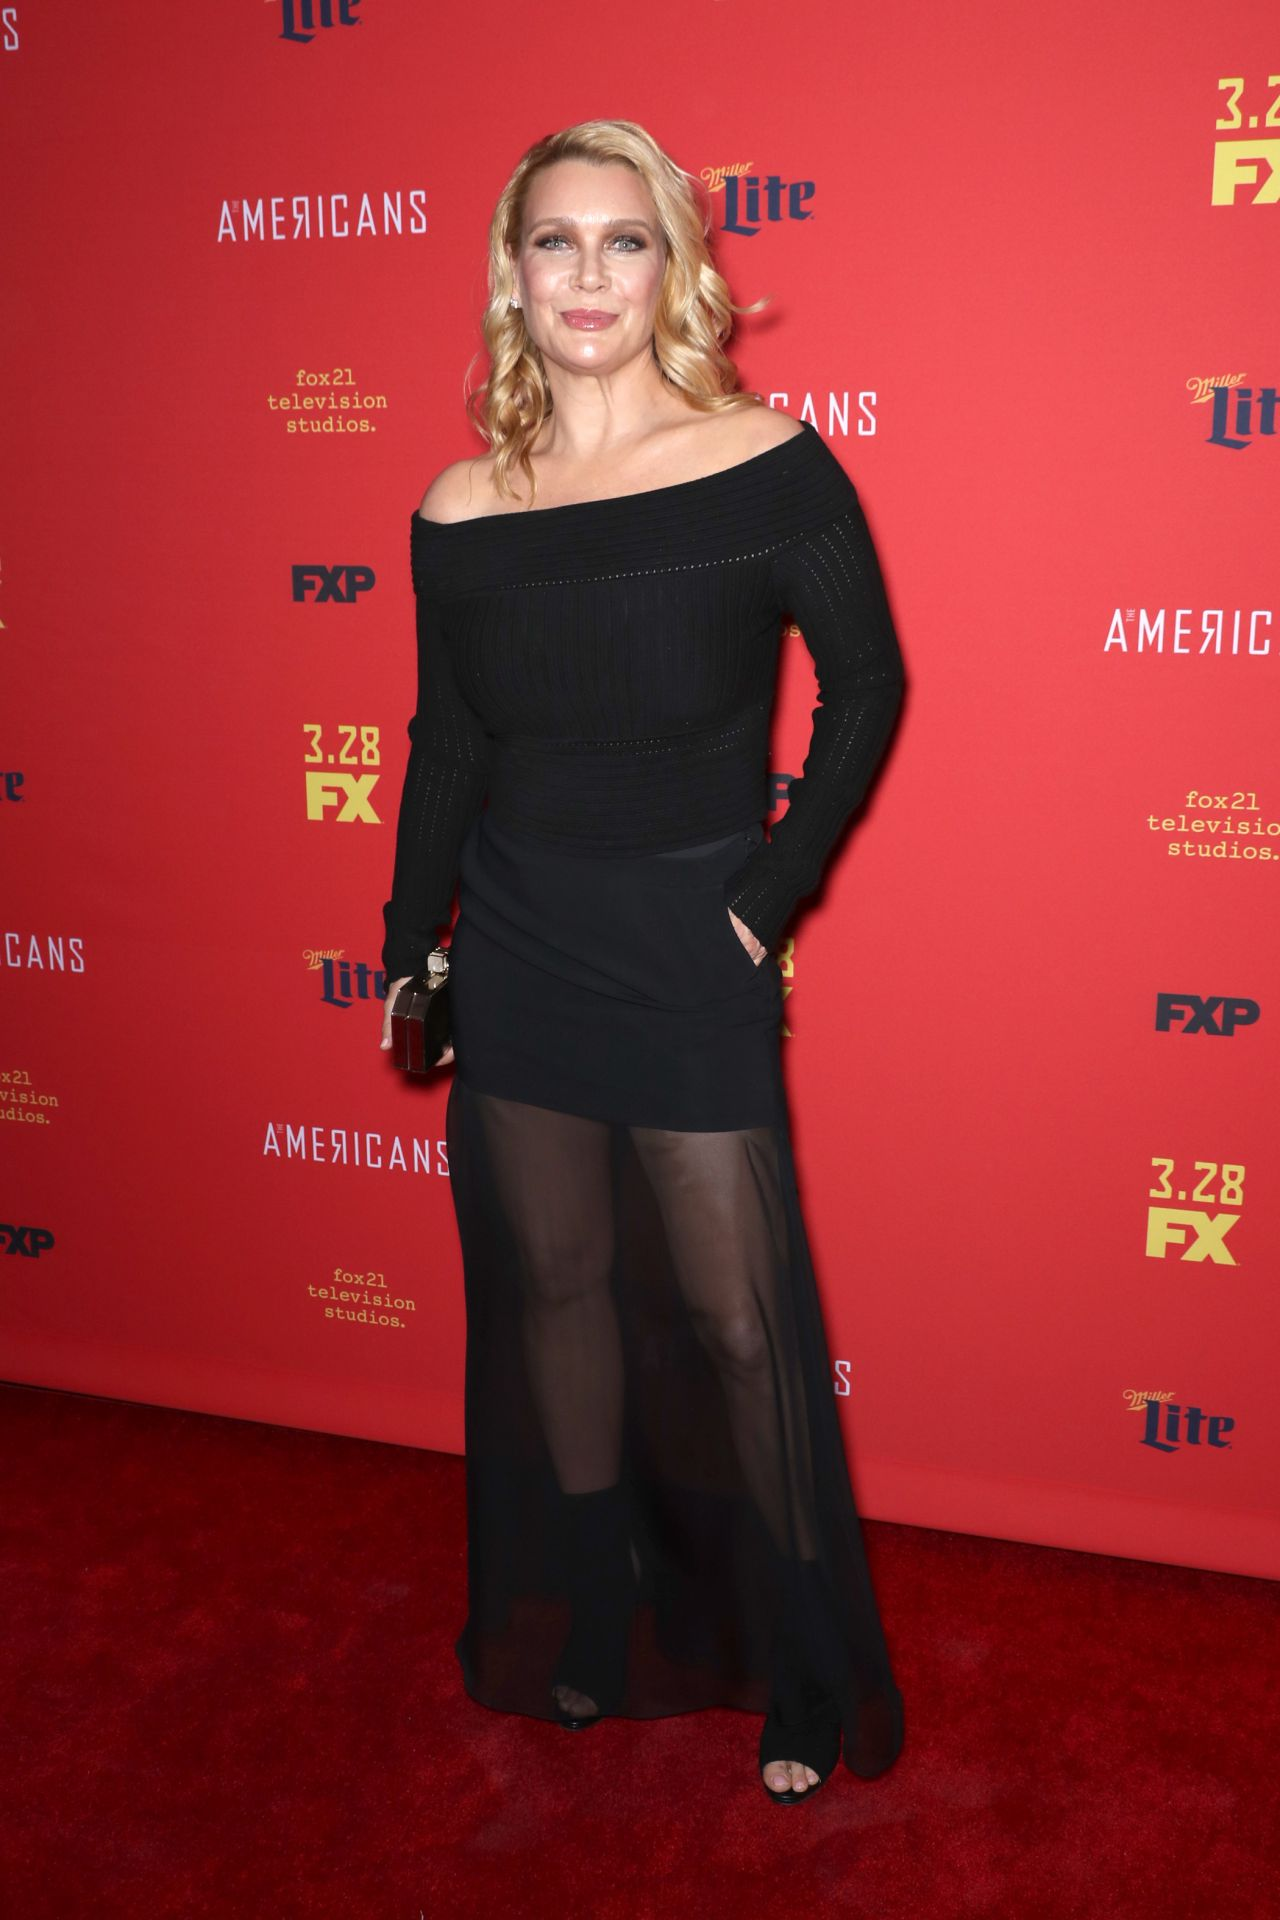 Laurie Holden Quot The American S Tv Show Premiere In Ny